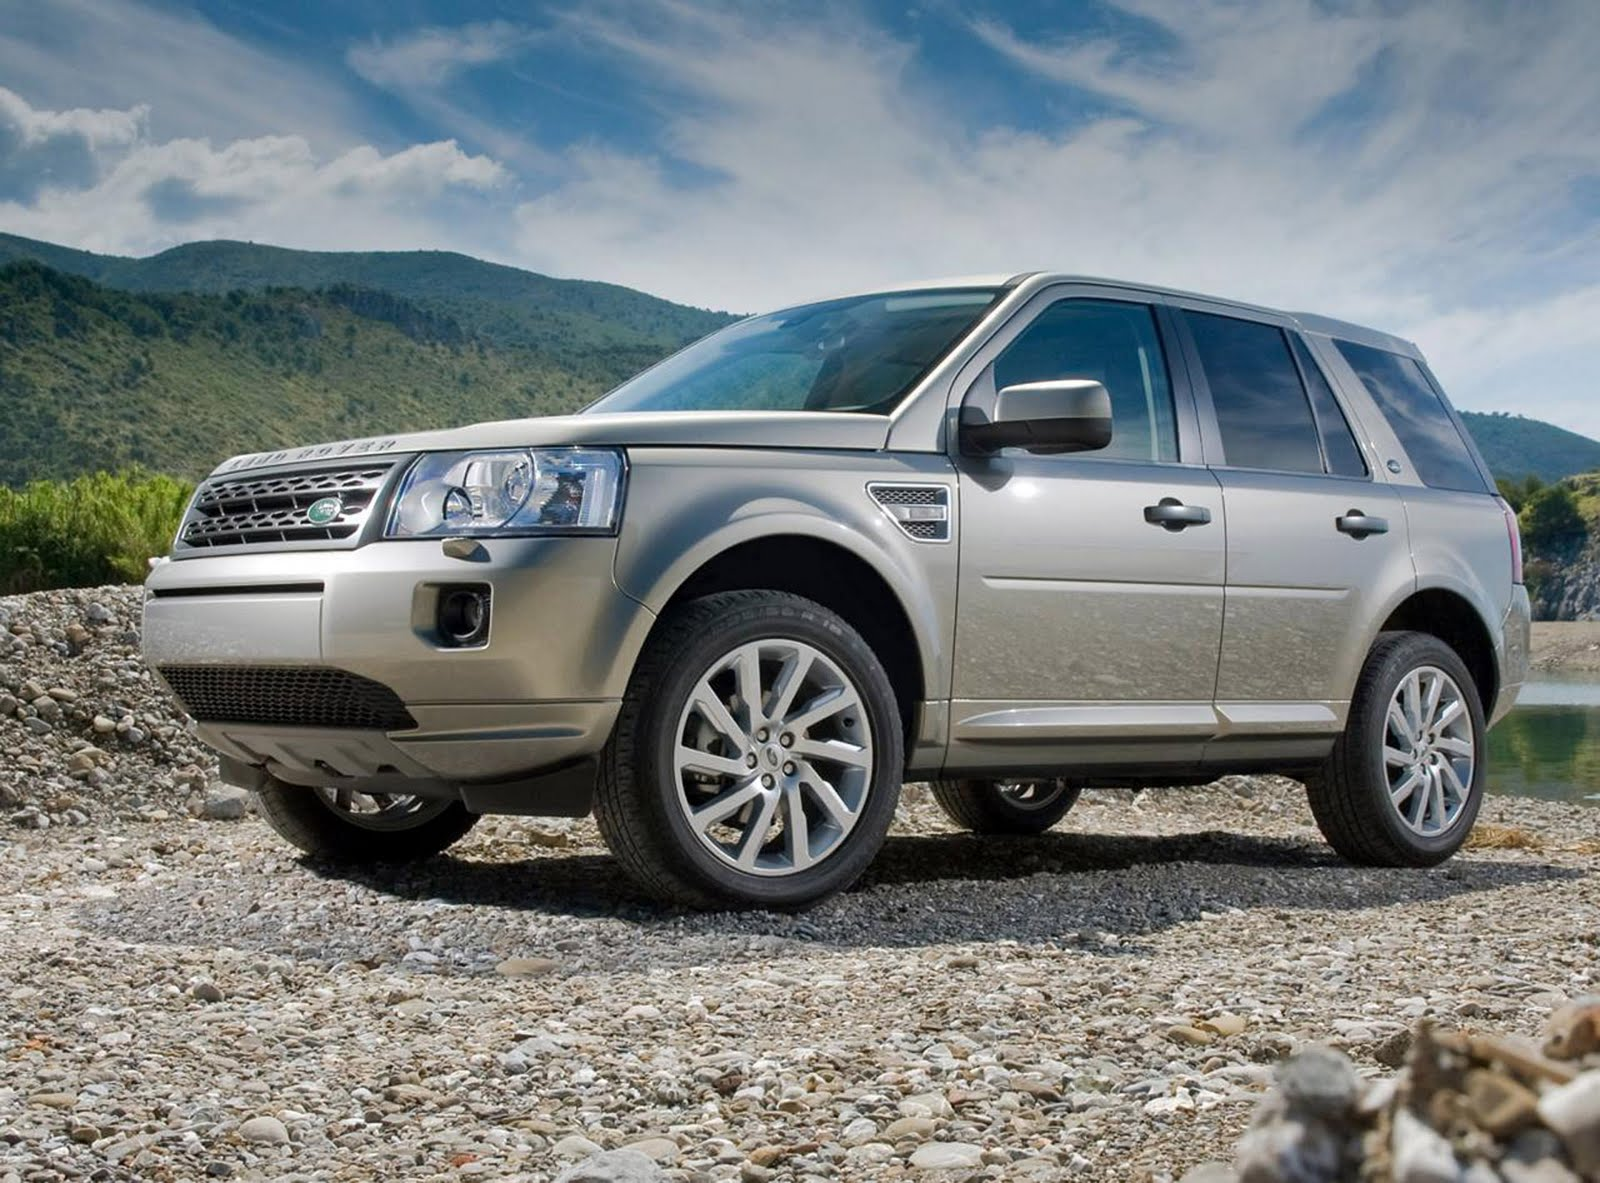 land rover freelander 2 sd4 engine automotive. Black Bedroom Furniture Sets. Home Design Ideas